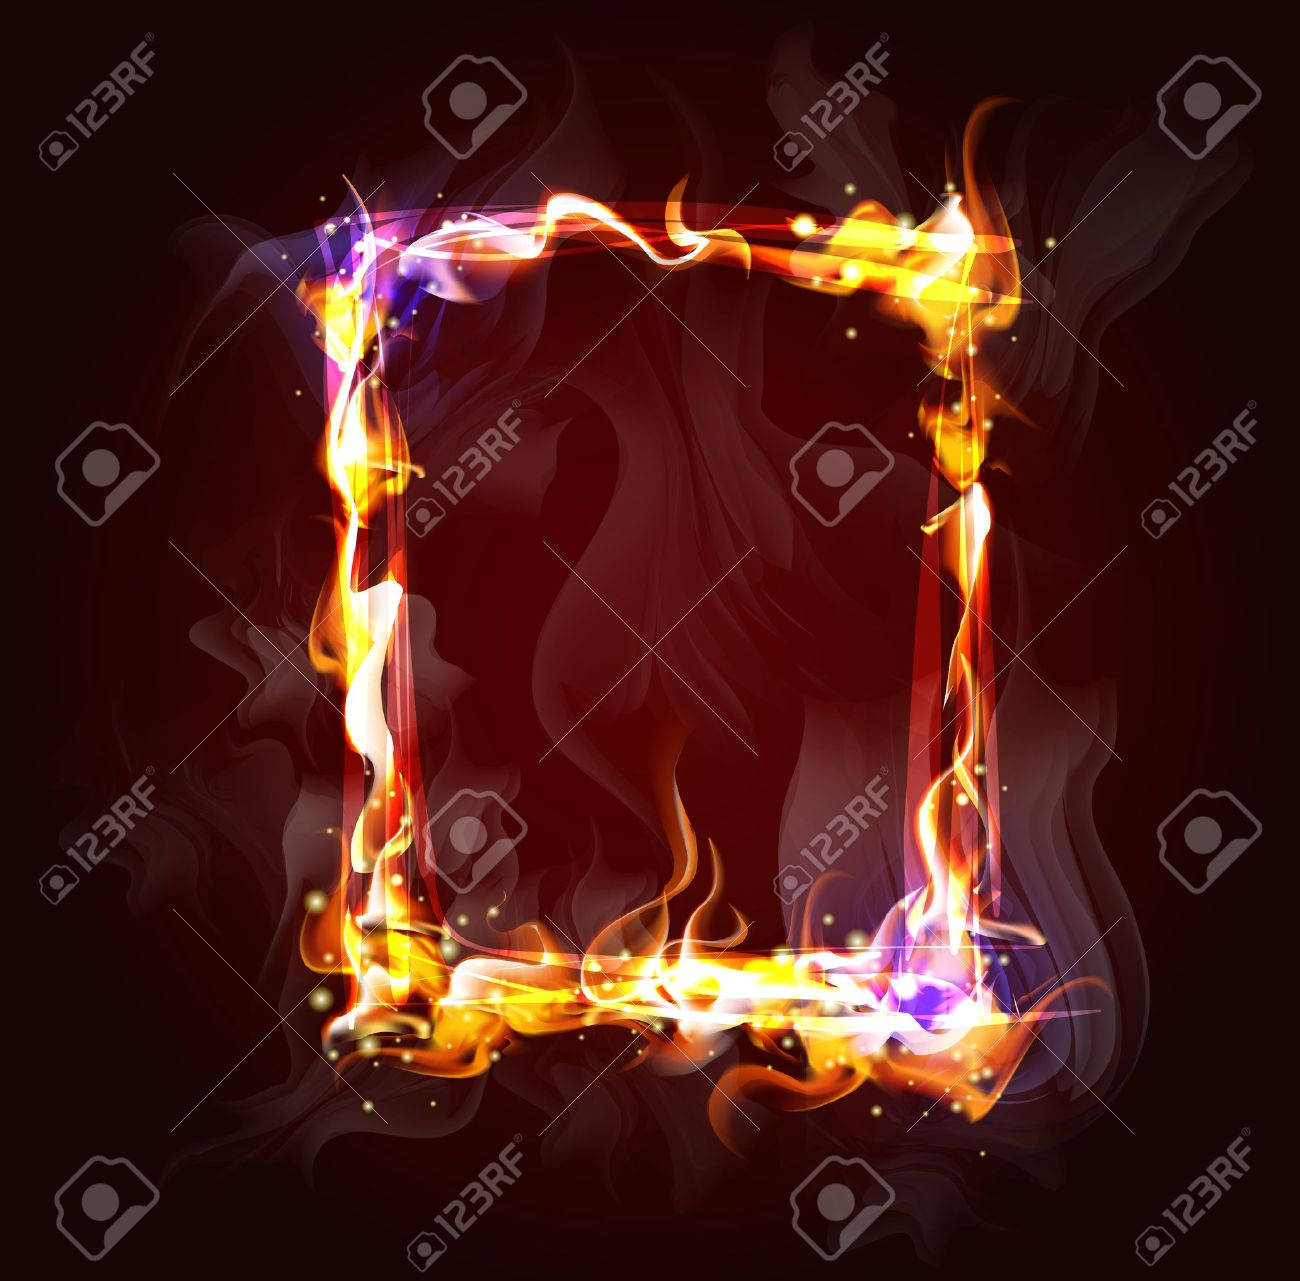 Fire Frame Background For Design Royalty Free Cliparts, Vectors.